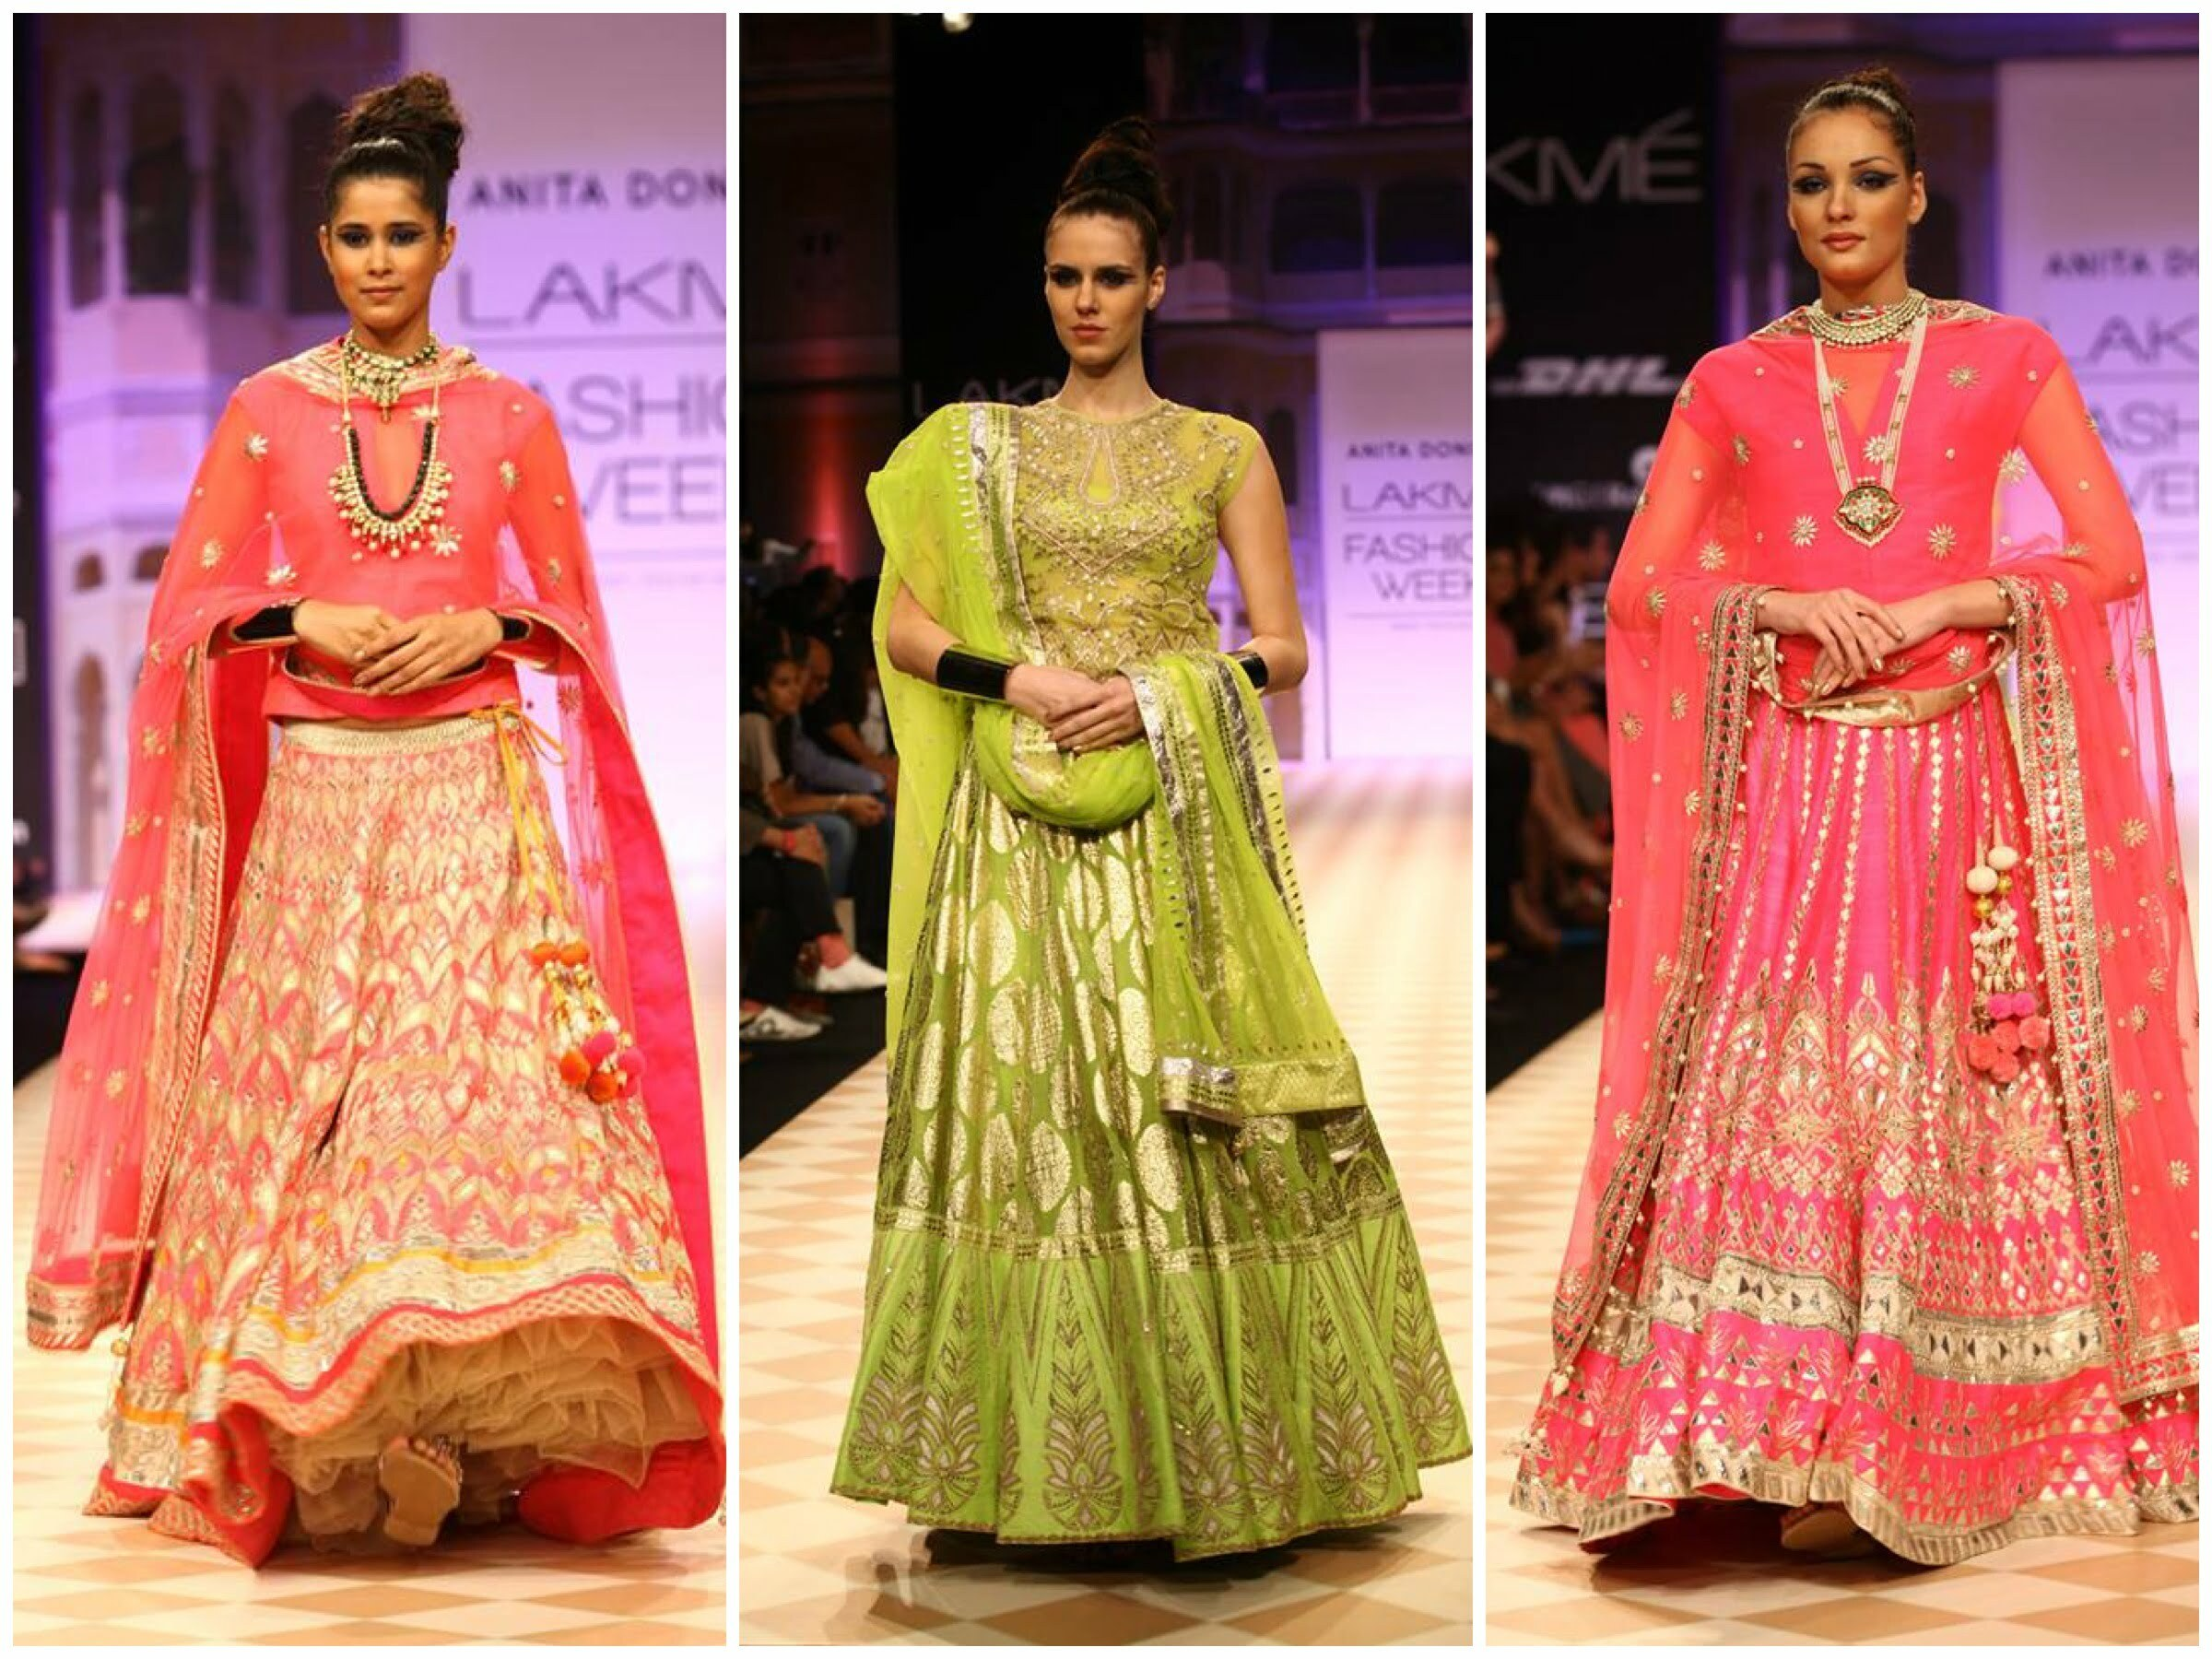 Anita Dongre Bridal Collection 2016 - WedAbout